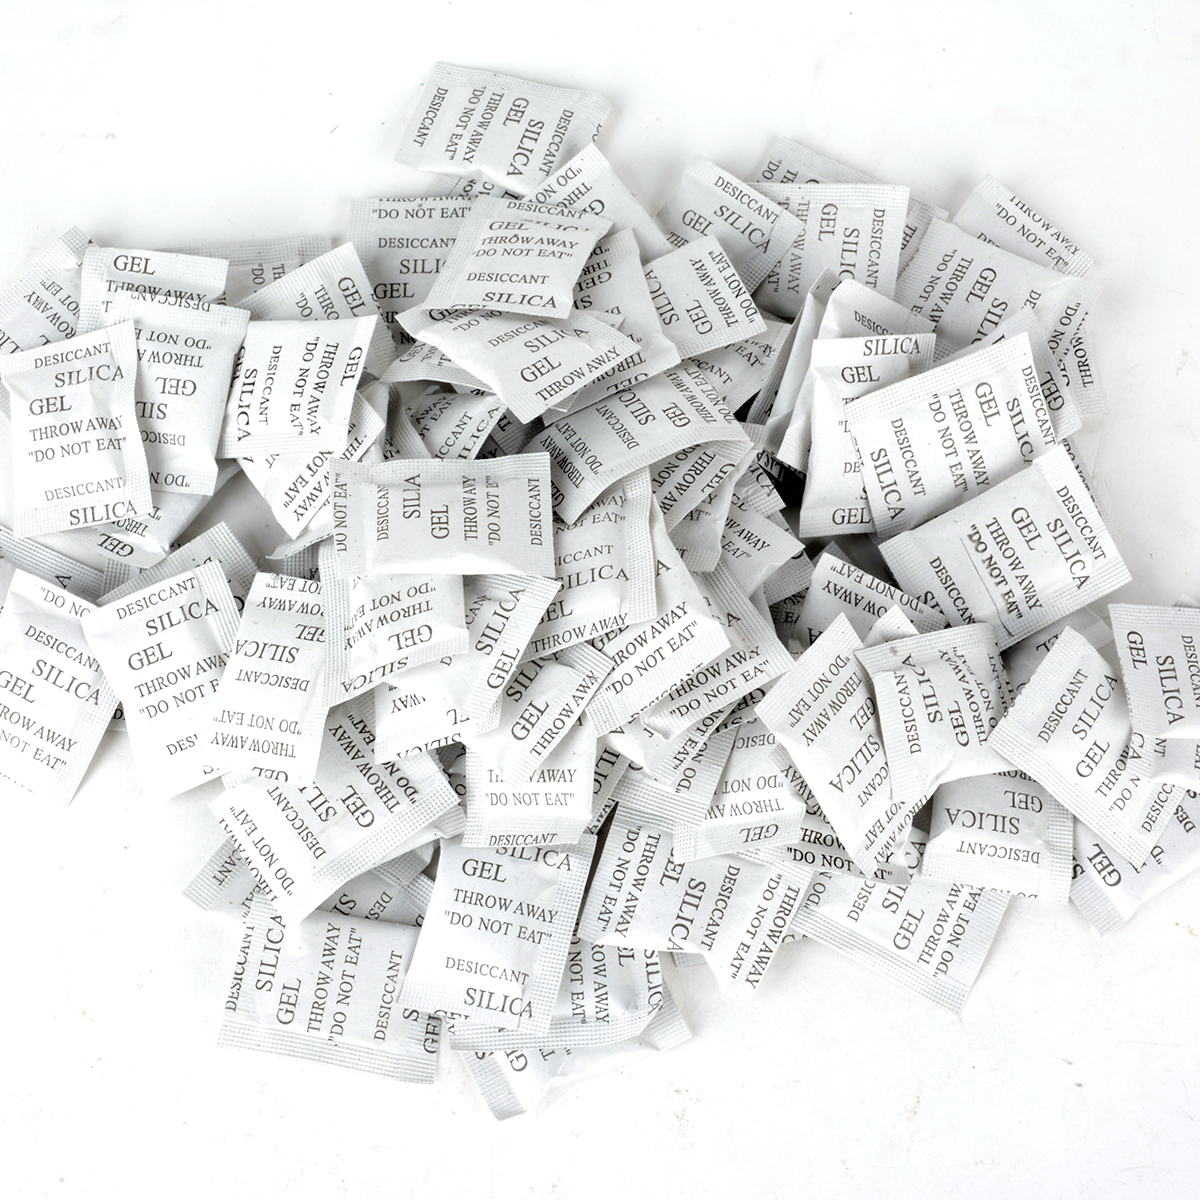 100 Packs Non-Toxic Silica Gel Desiccant Moisture Damp Absorber Dehumidifier For Collectibles Wrapped Food Kepping